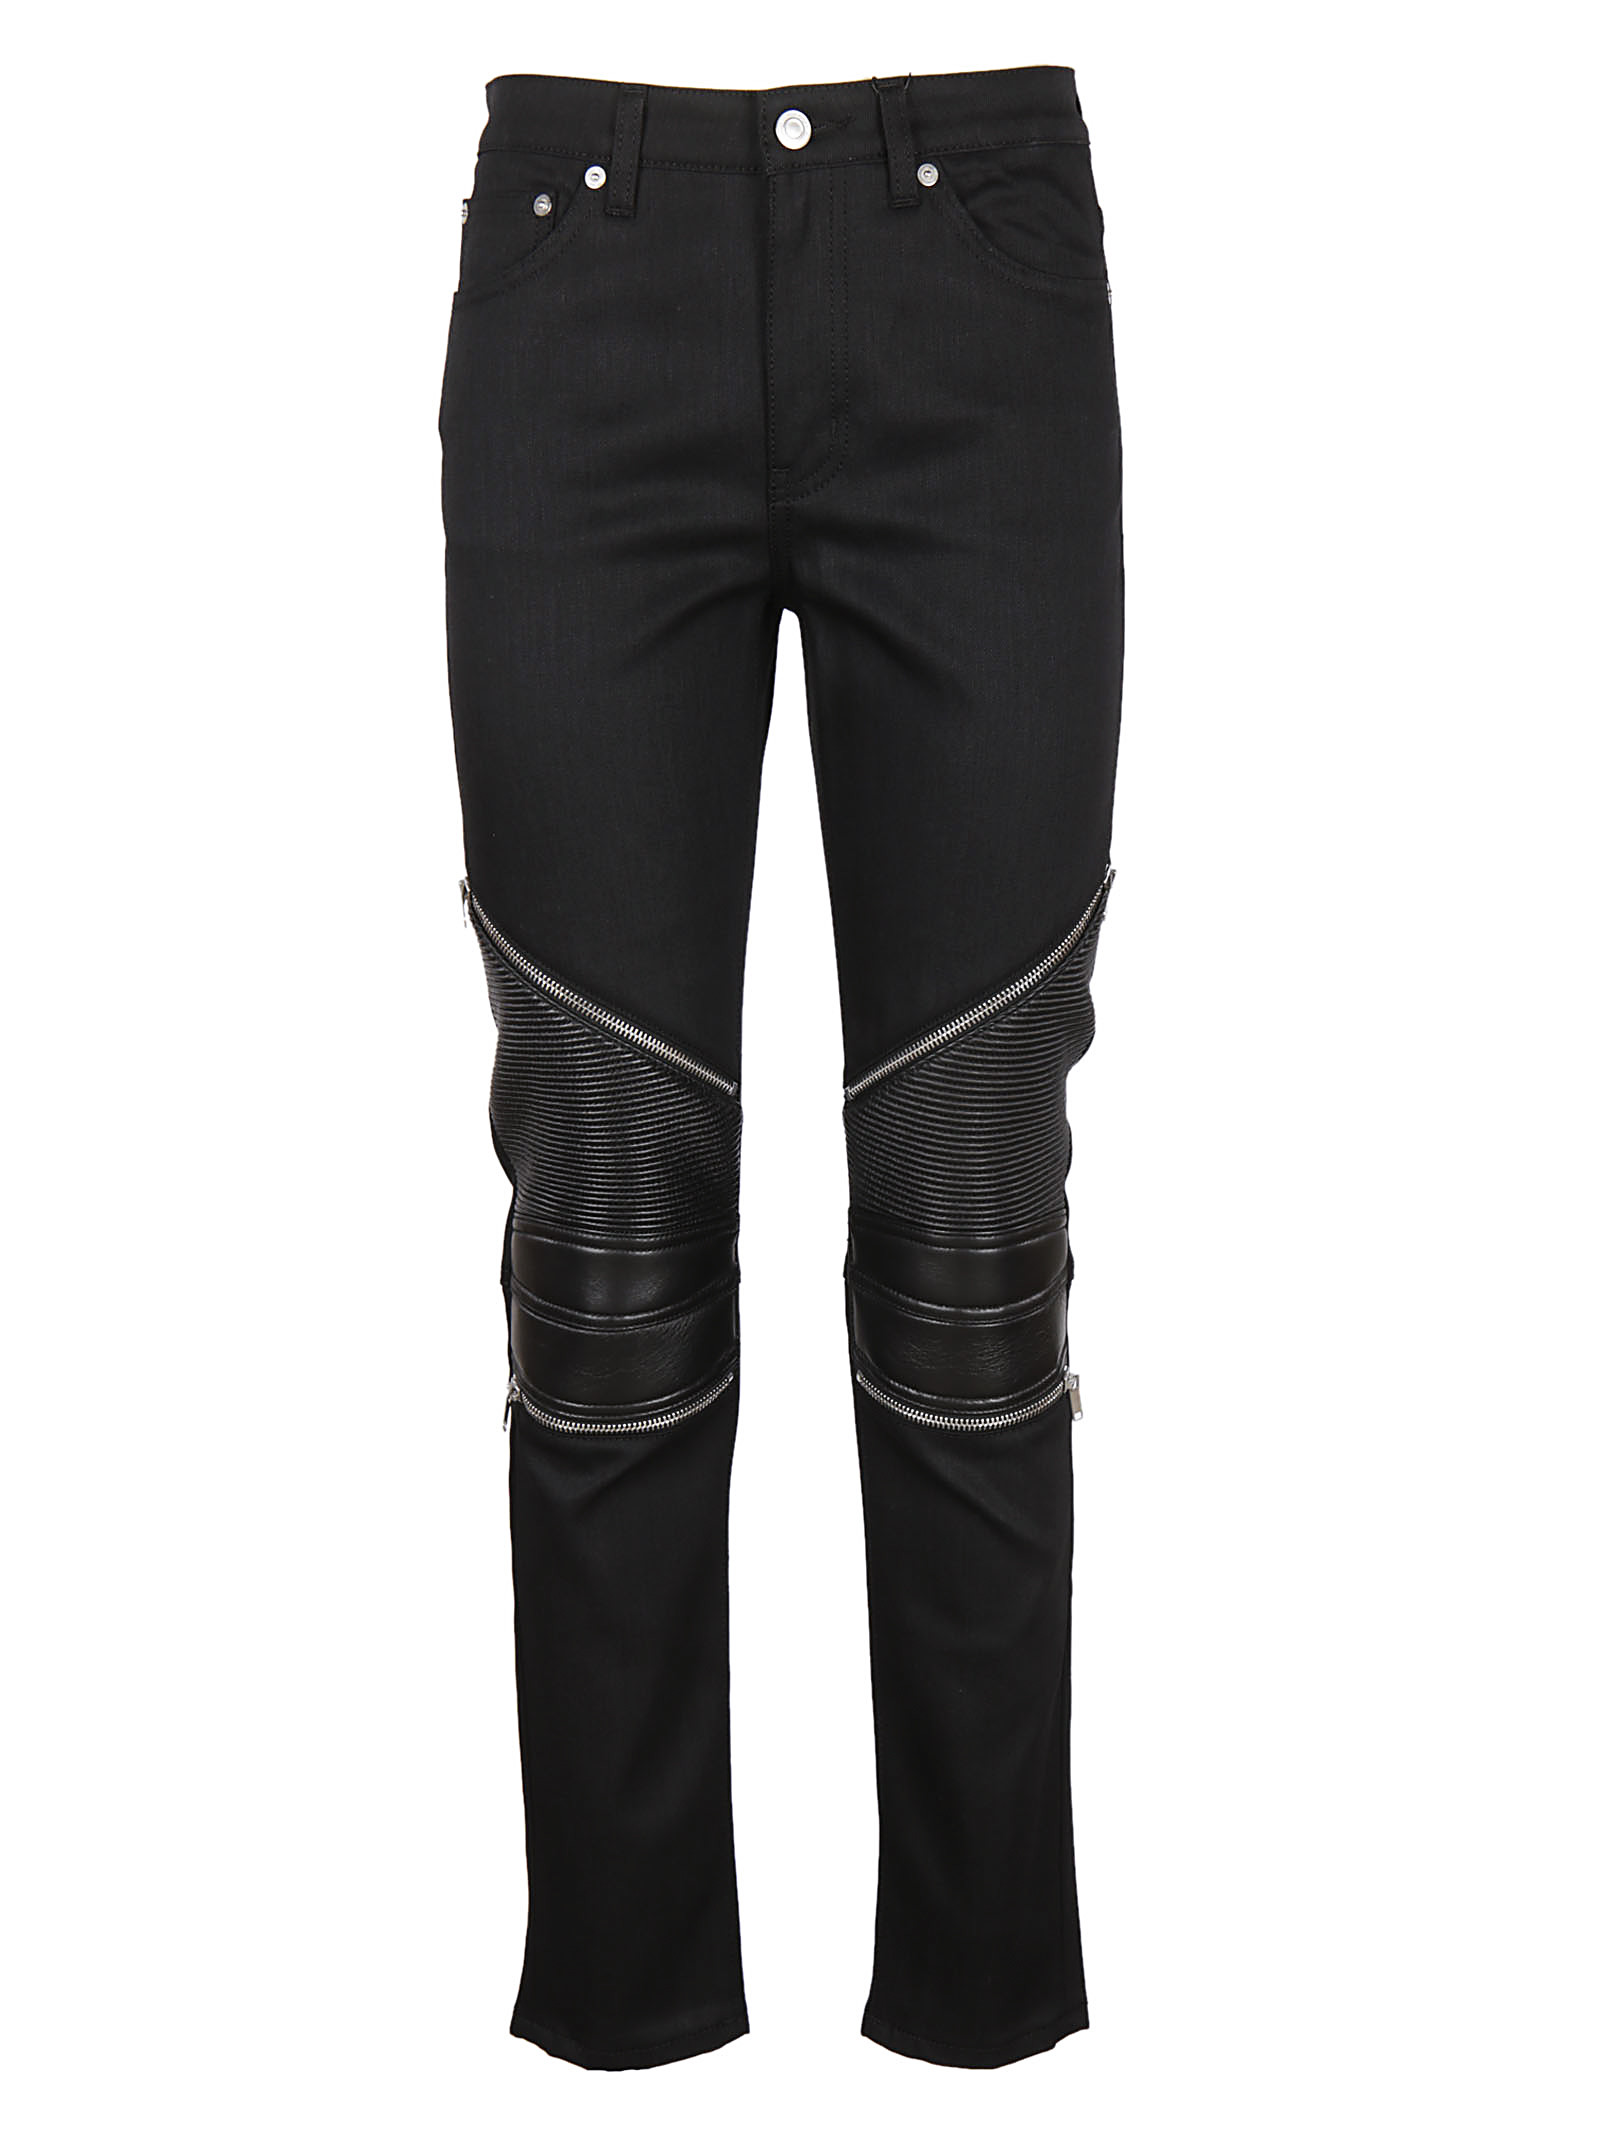 Saint Laurent Zipped Jeans Trousers